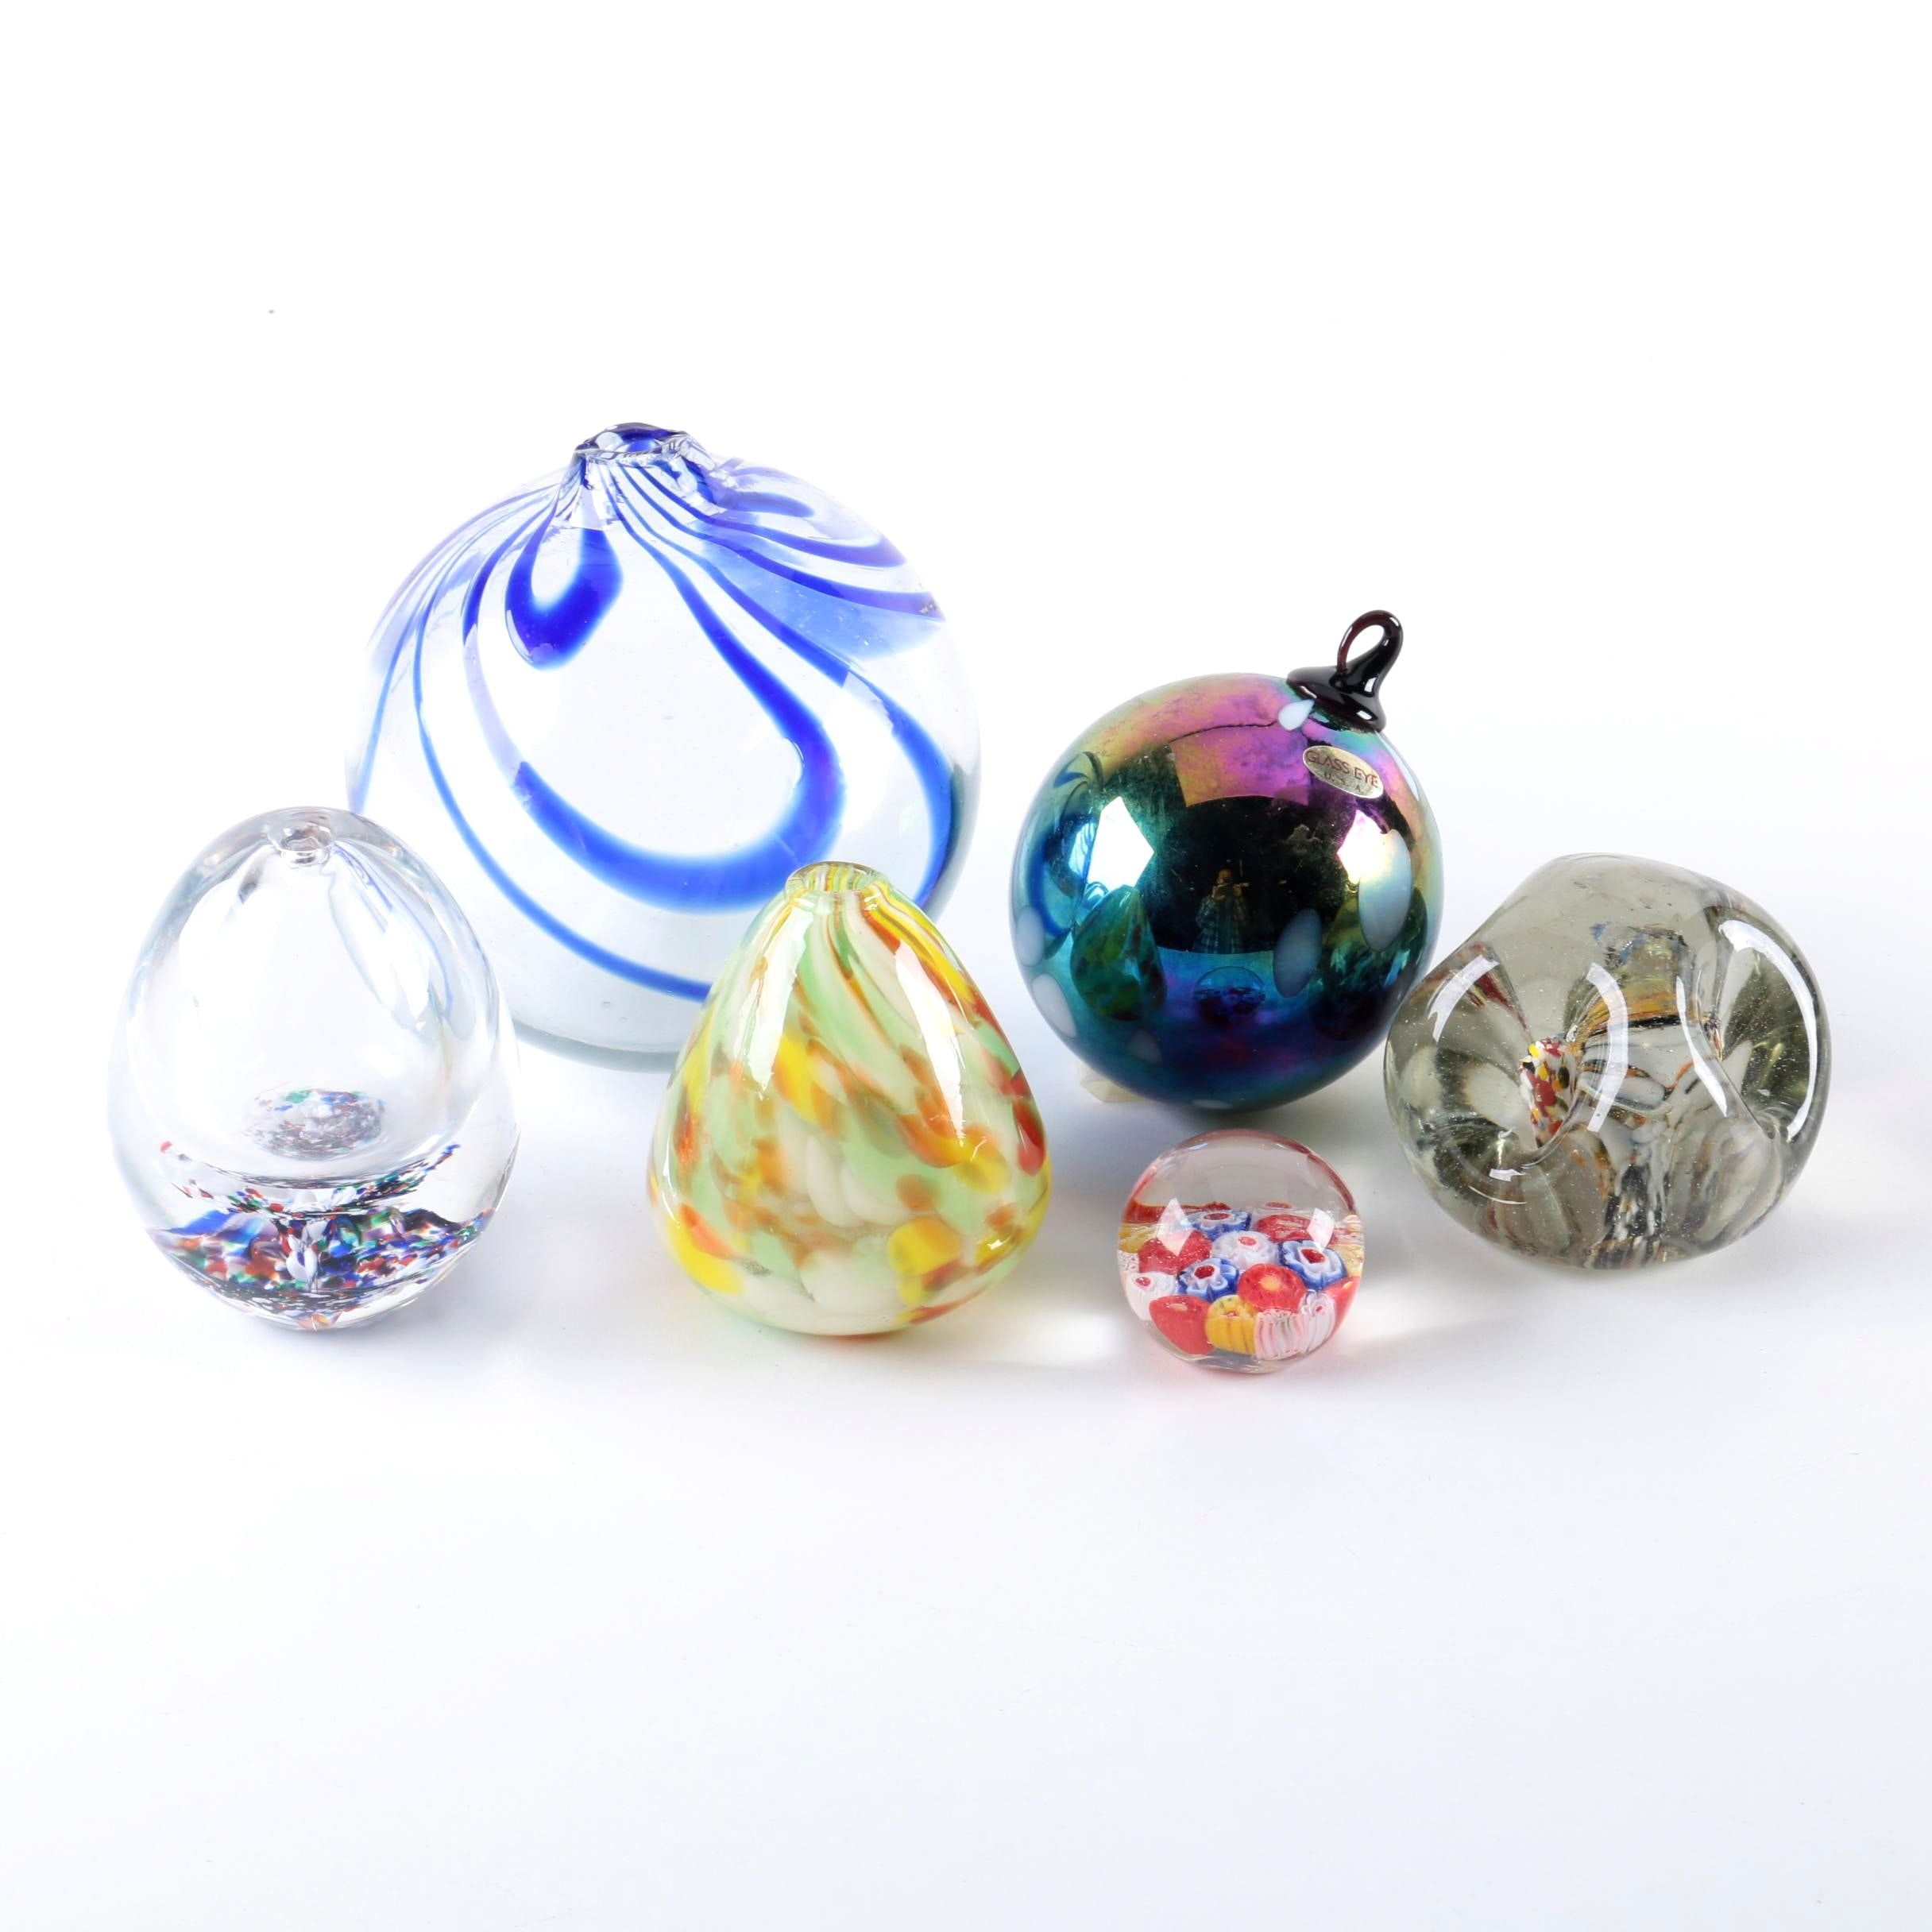 Art Glass Paperweights and Oil Lamps Including Glass Eye Studio